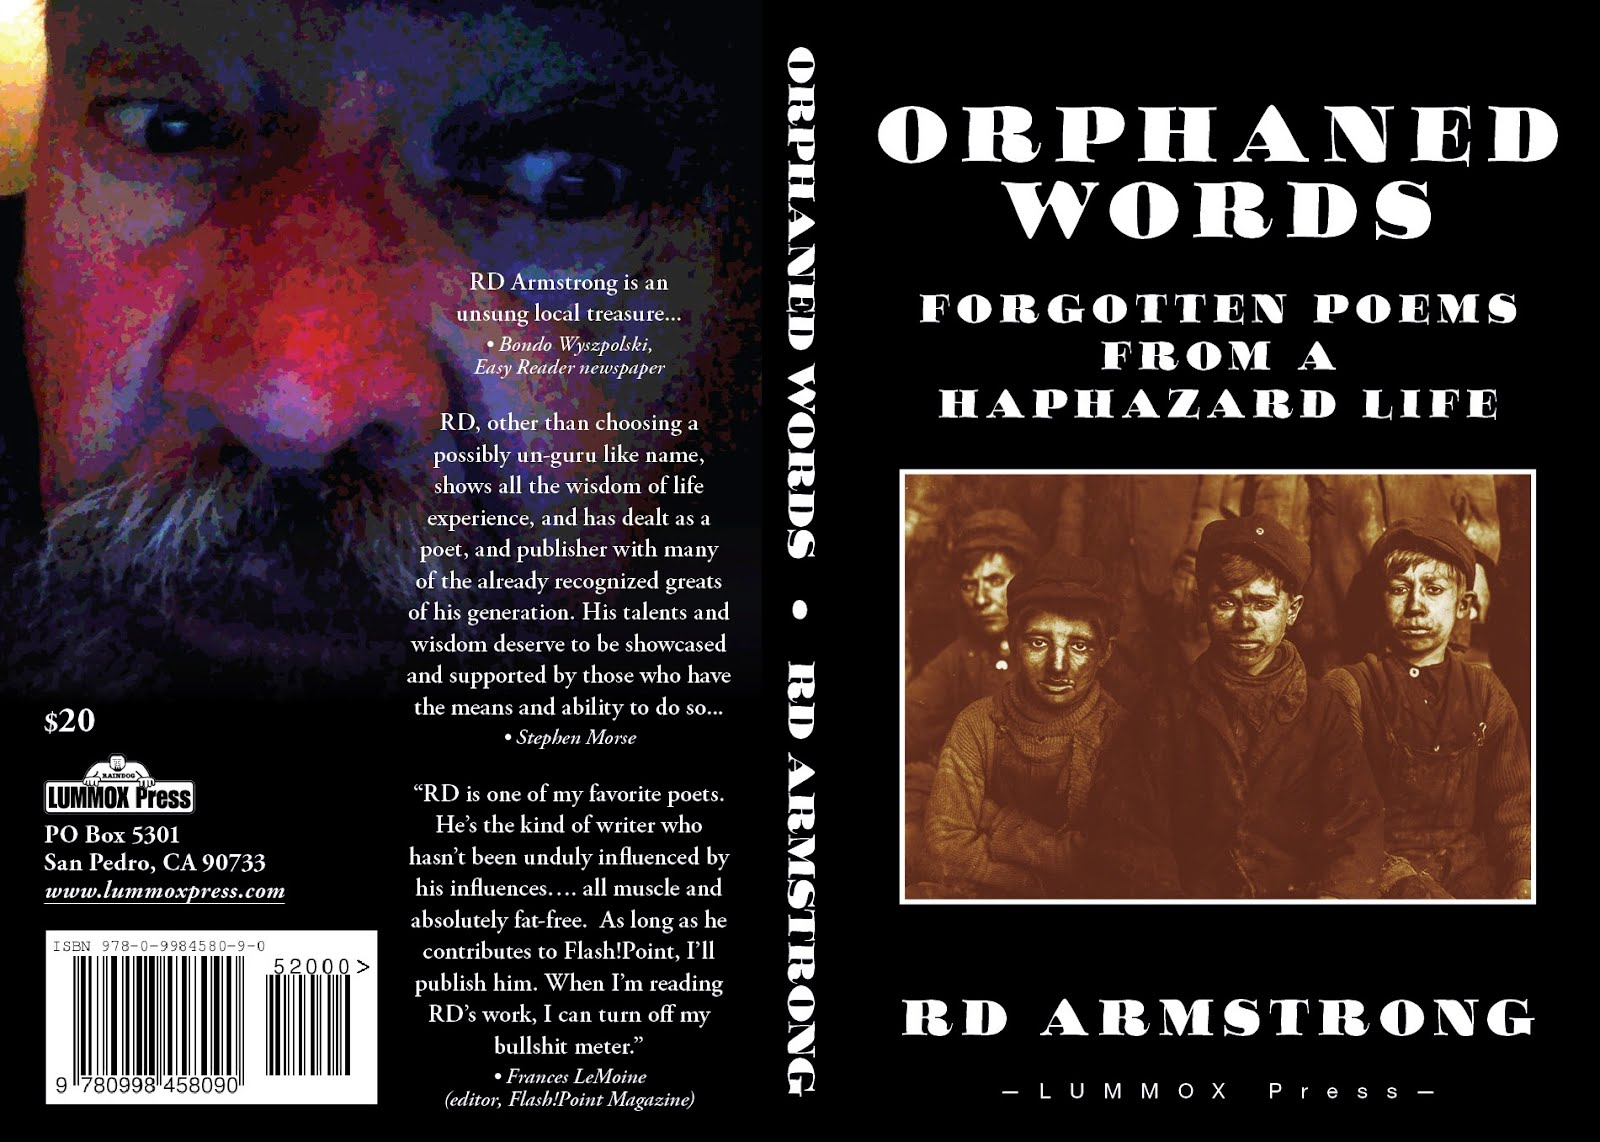 Orpahned Words: Forgotten Poems For A Haphazard Life by R.D. Armstrong